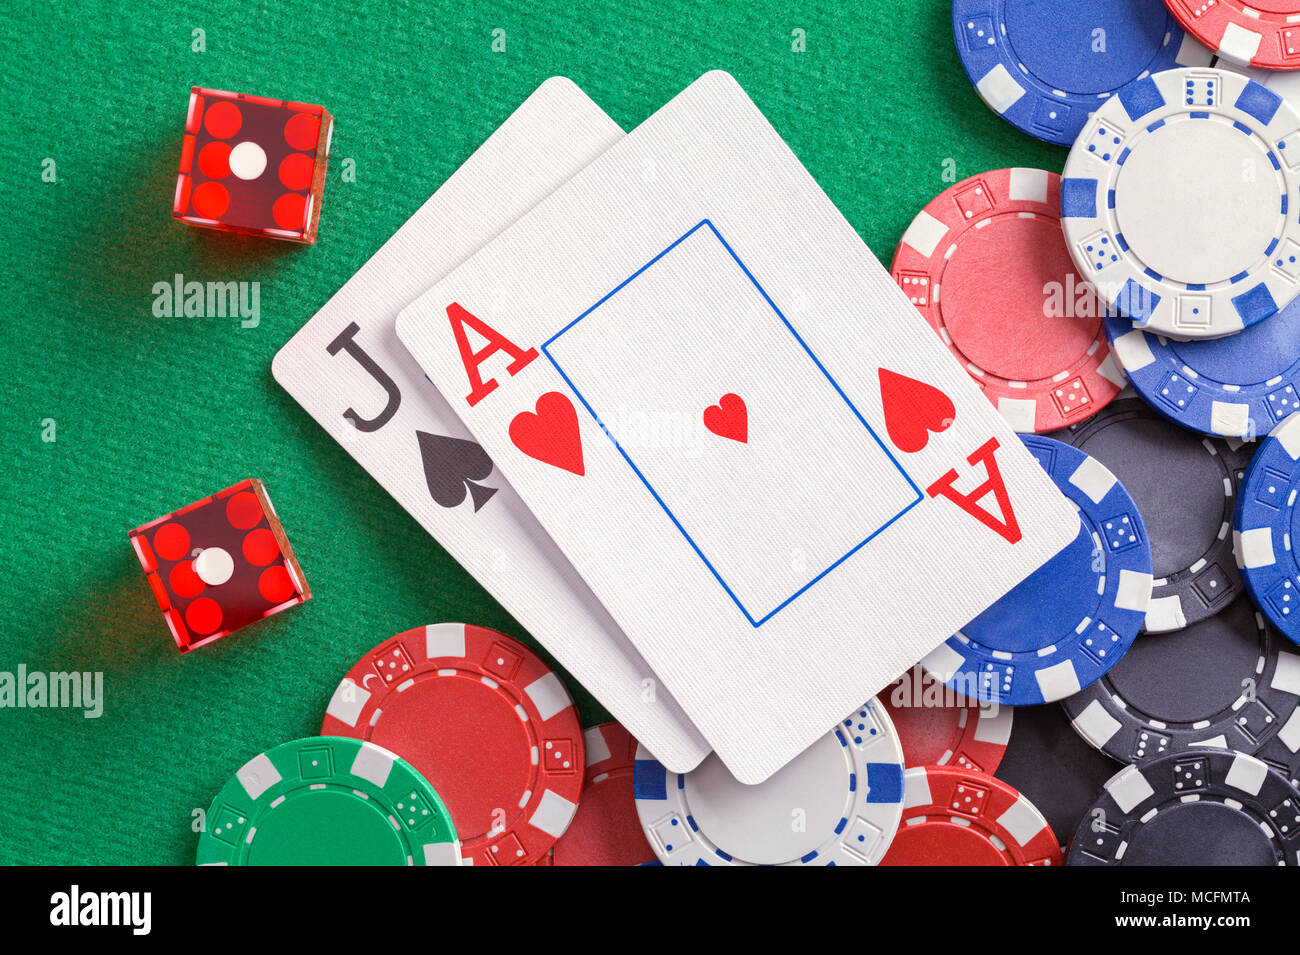 Black Jack Cards with Dice and Casino Chips. Stock Photo